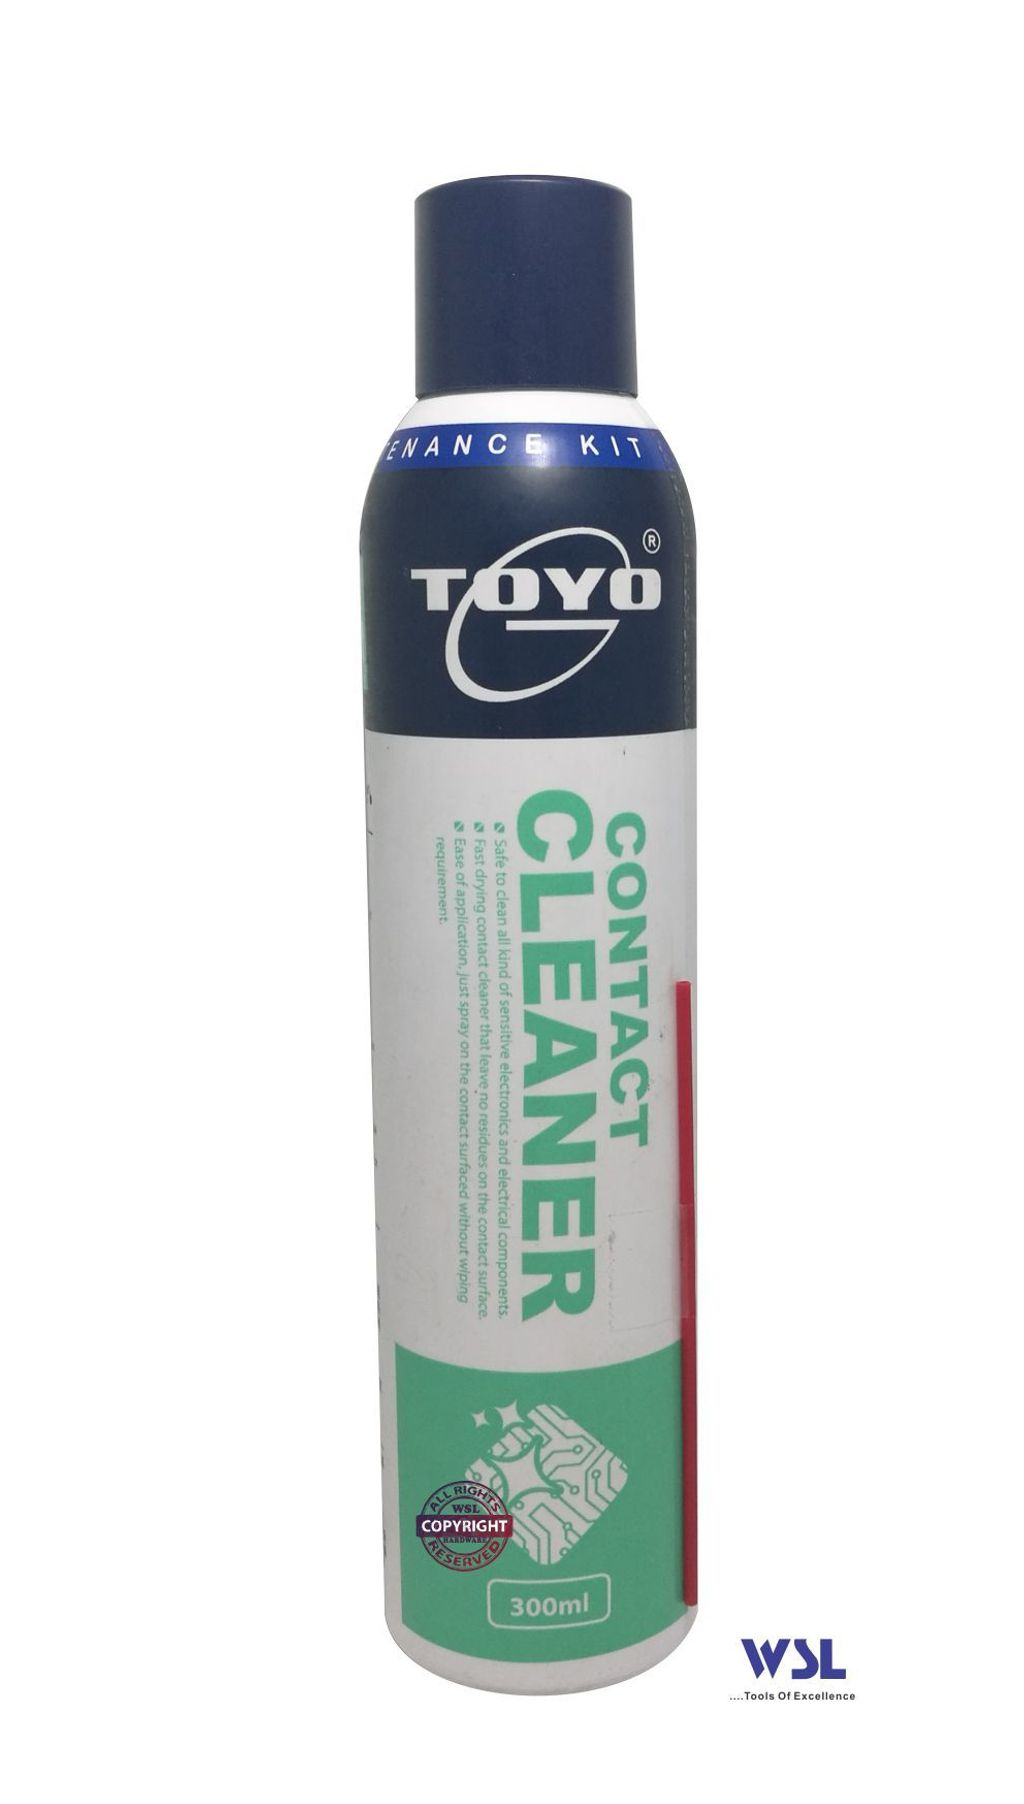 toyo contact clearner.jpg